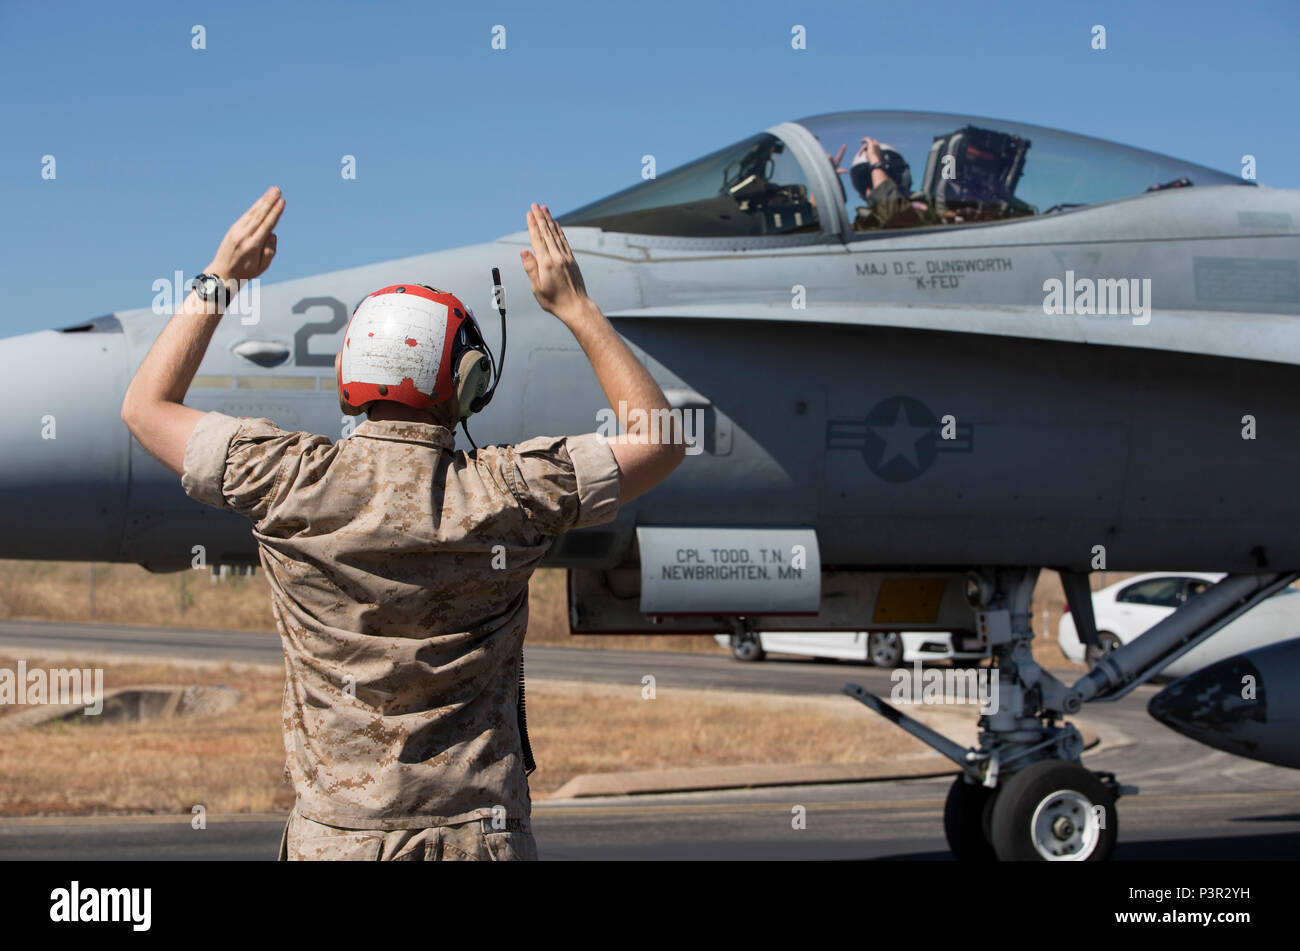 Cpl. Matthew Sisk, ordnance man with Marine Fighter Attack Squadron (VMFA) 122, guides an F/A 18C Hornet with VMFA-122 to a halt for inspection at Royal Australian Air Force Base Tindal, Australia, July 22, 2016. VMFA-122 traveled to RAAF Base Tindal for the first time for exercises Southern Frontier Unit Level Training and Pitch Black 16. Southern Frontier ULT will help the squadron gain experience and qualifications in low altitude, air ground, high explosive ordnance delivery at the unit level. Pitch Black 16 affords Marines with VMFA-122 the opportunity to integrate and increase interopera - Stock Image